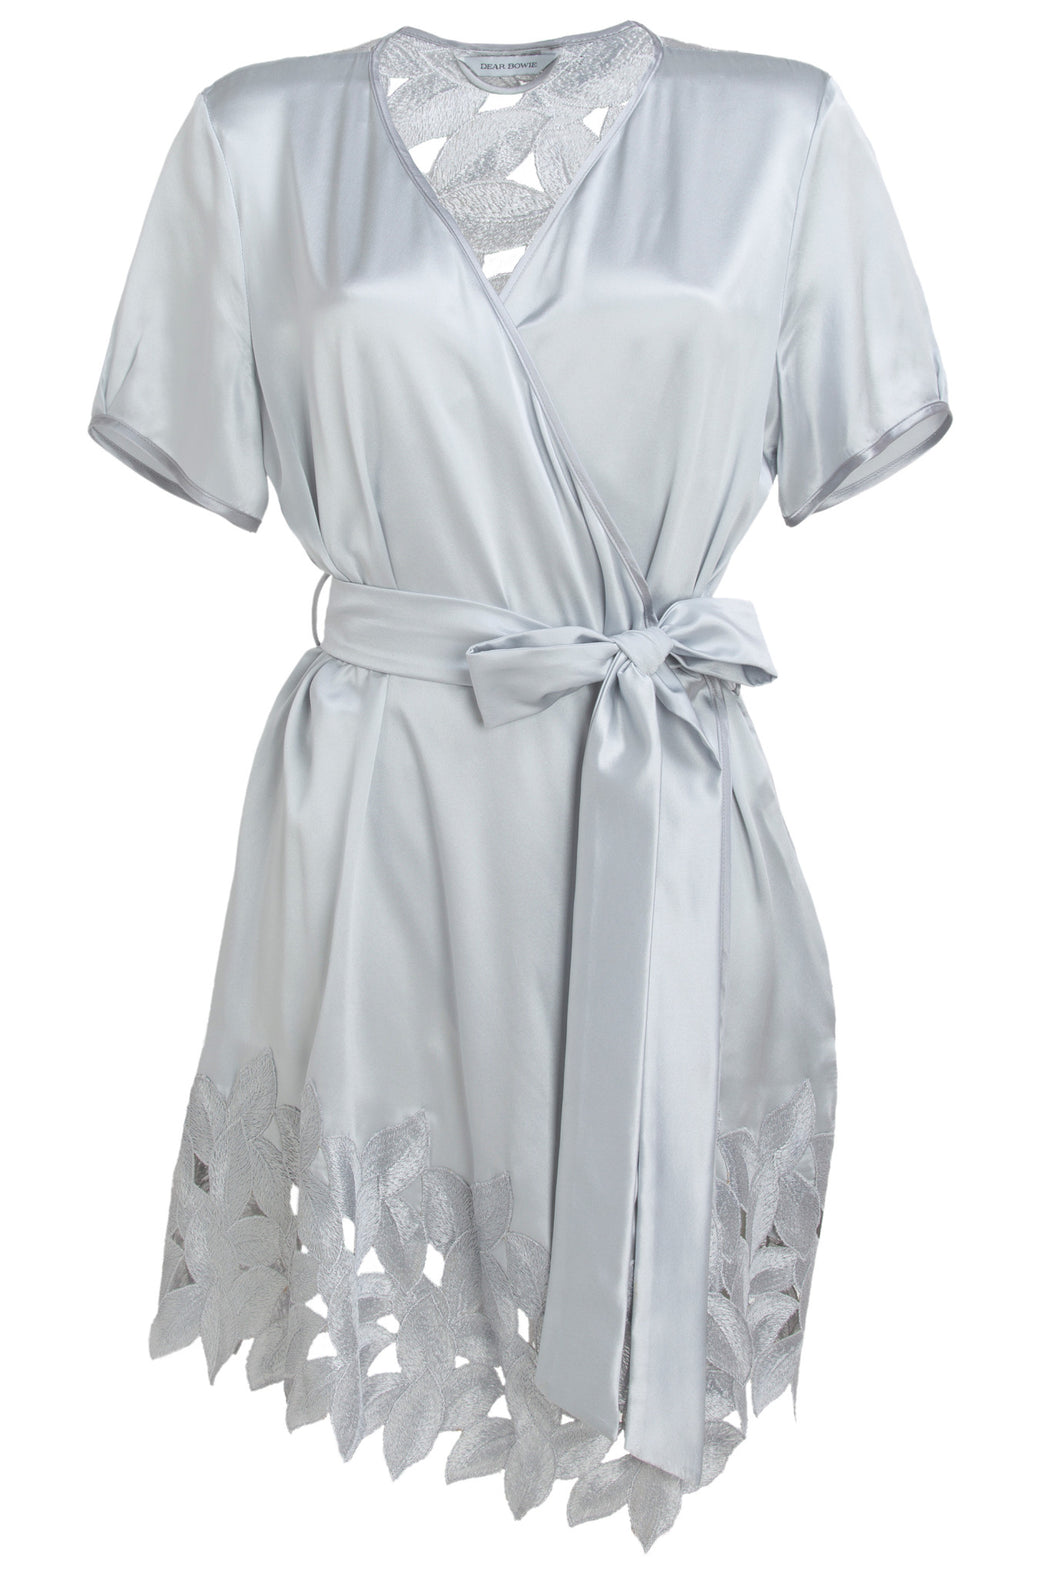 Workingirls Lingerie | Zoe Robe by Dear Bowie